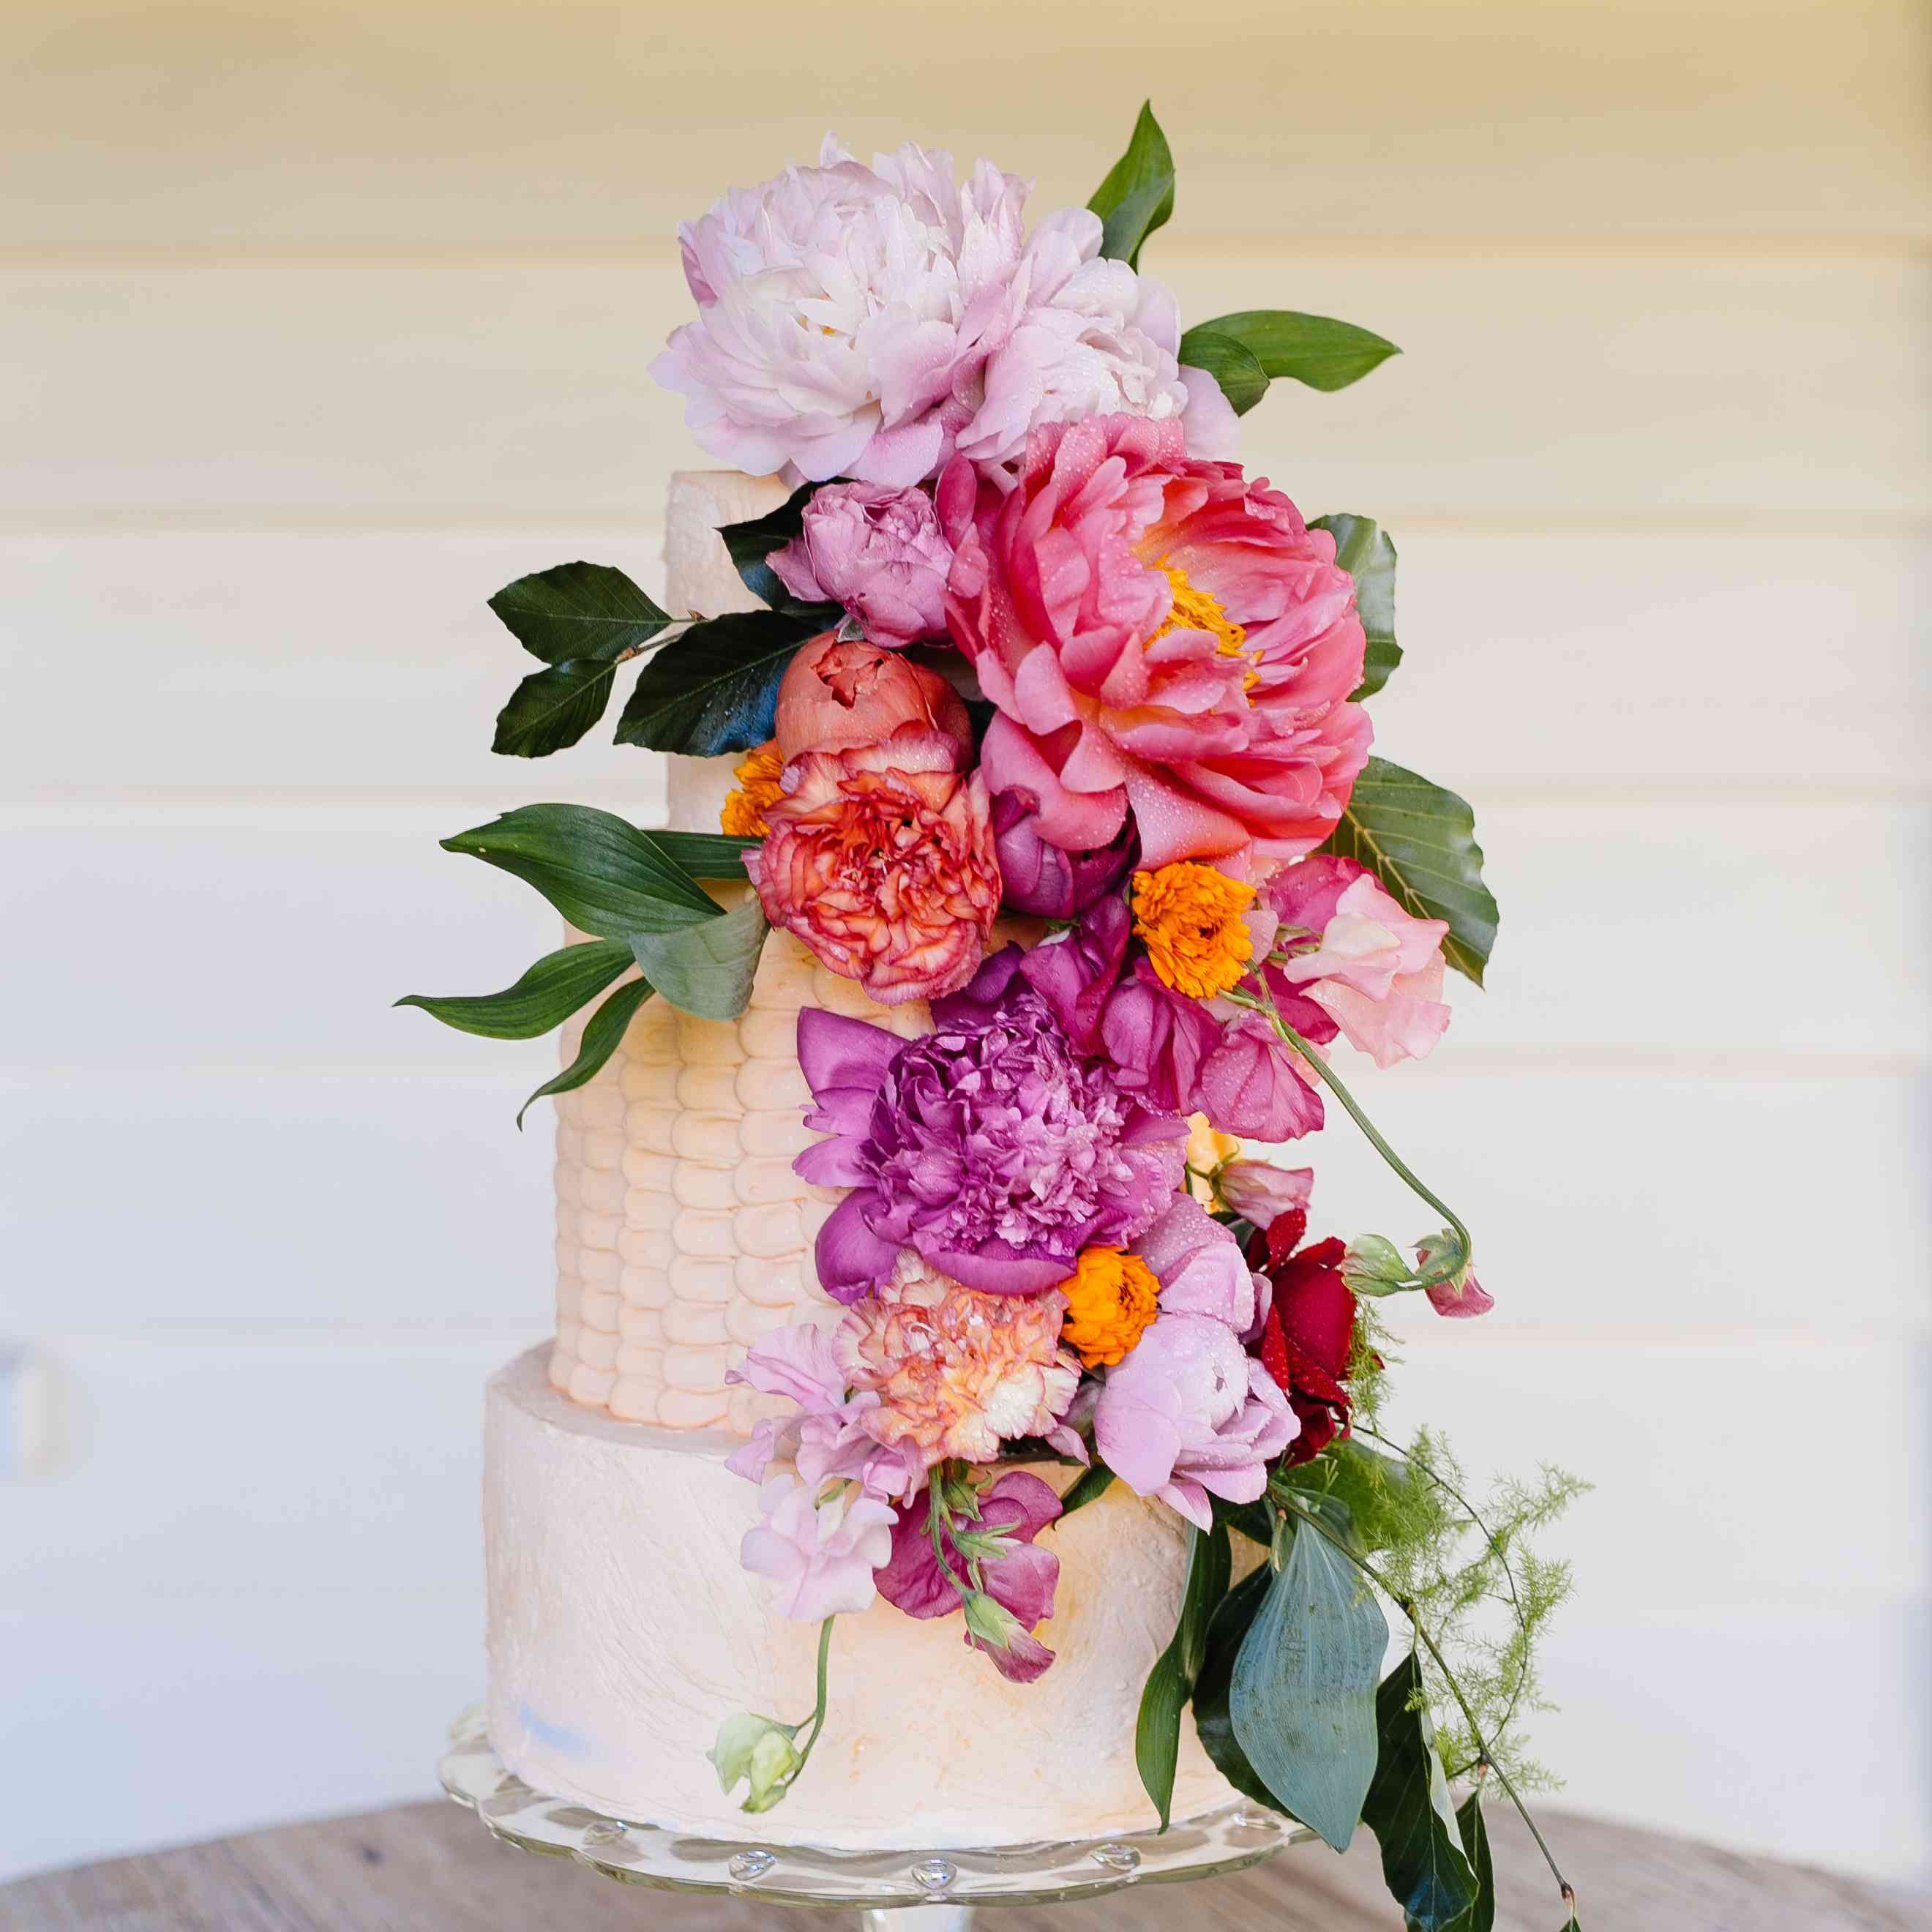 A wedding cake with cascading fresh florals